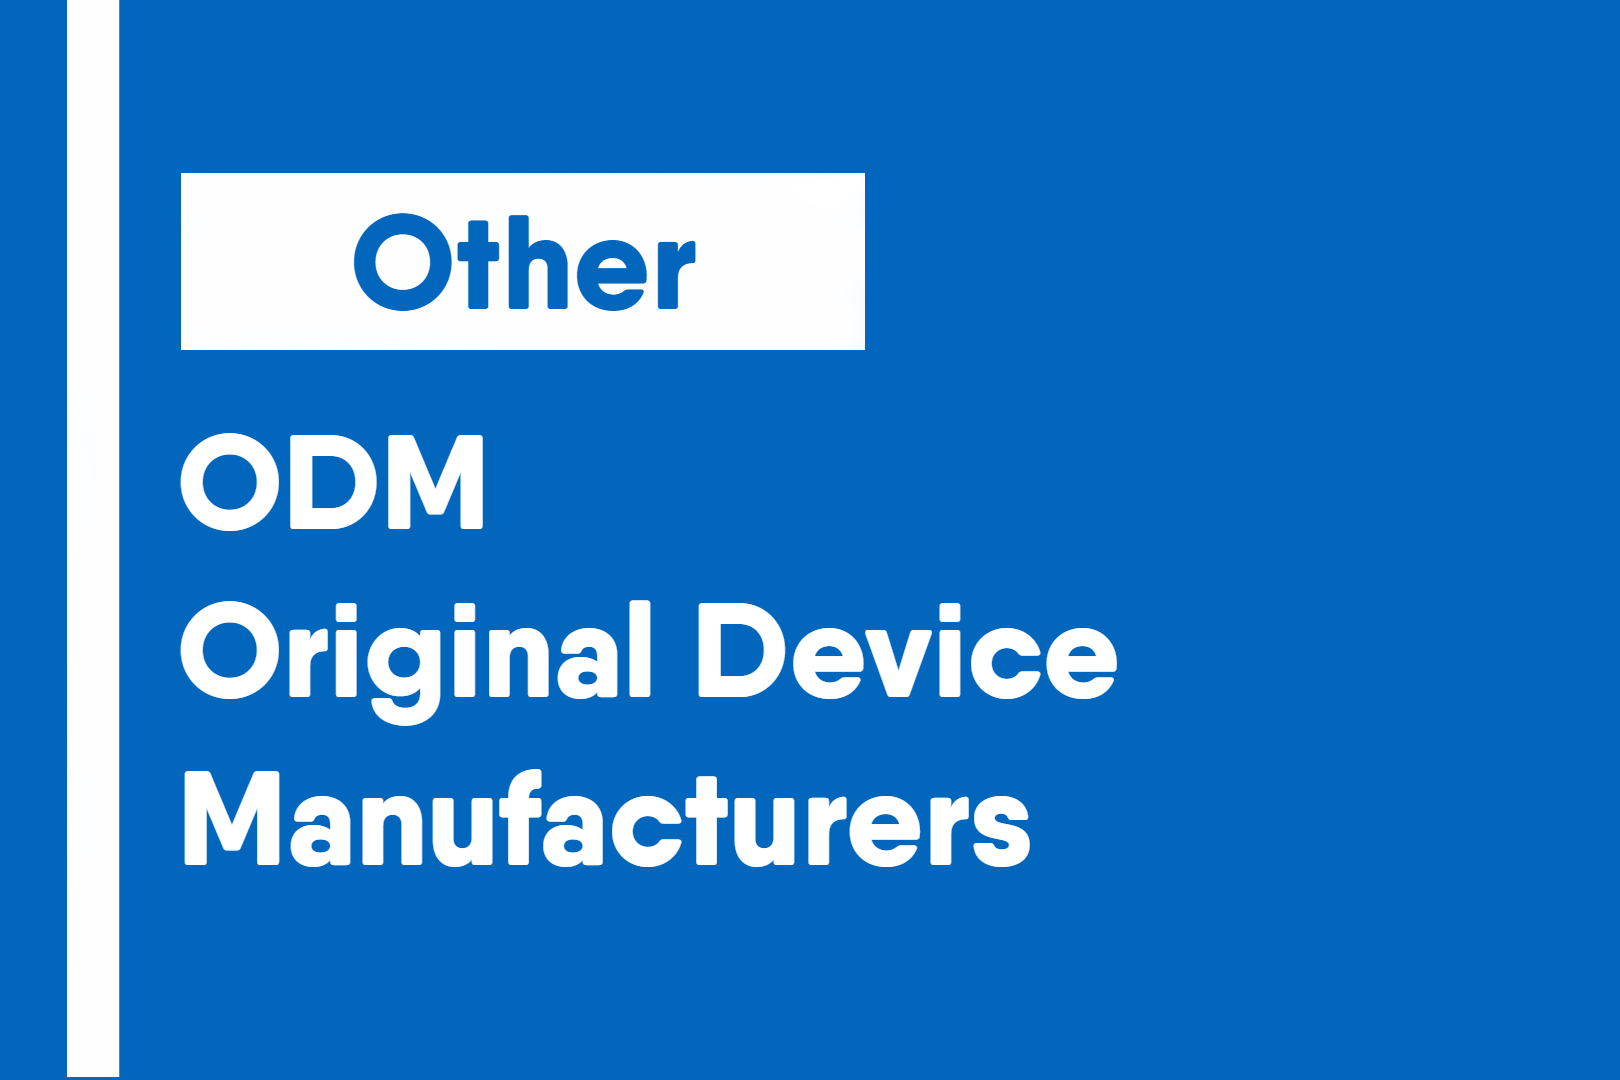 Original Device Manufacturers